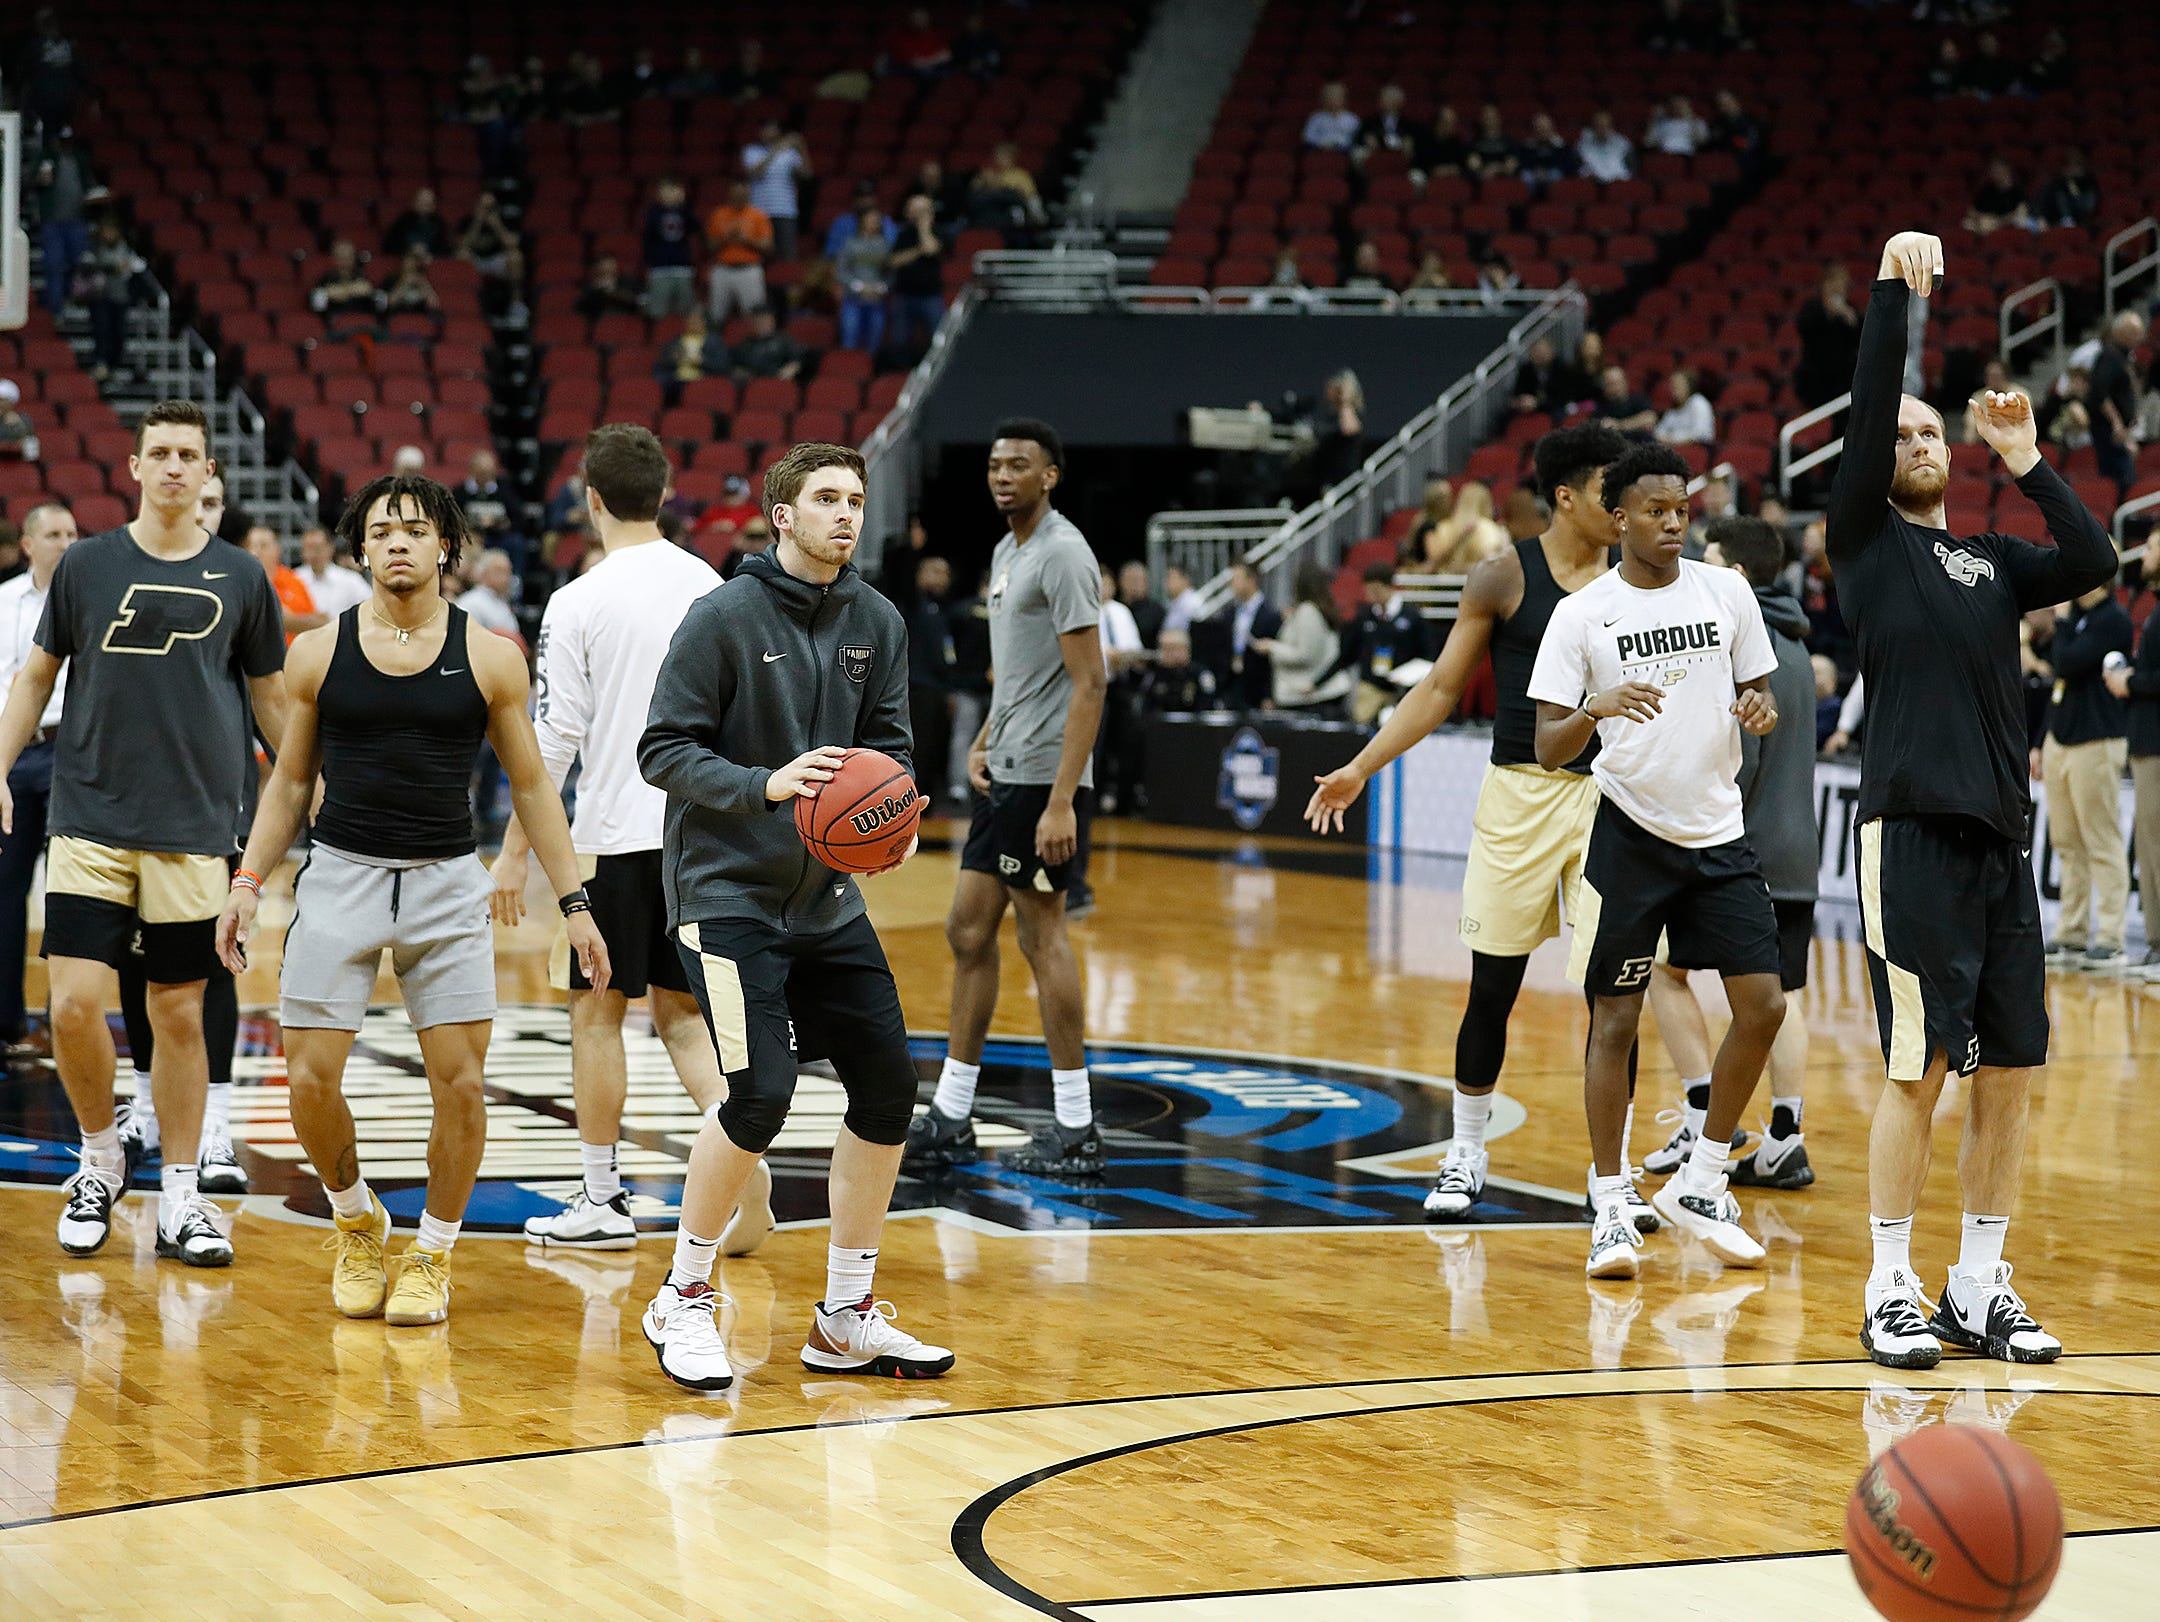 "Purdue Boilermakers warm up before the start of the NCAA Division I Basketball Championship ""Elite 8"" basketball game at the KFC Yum! Center in Louisville, KY., on Saturday, Mar 30, 2019."